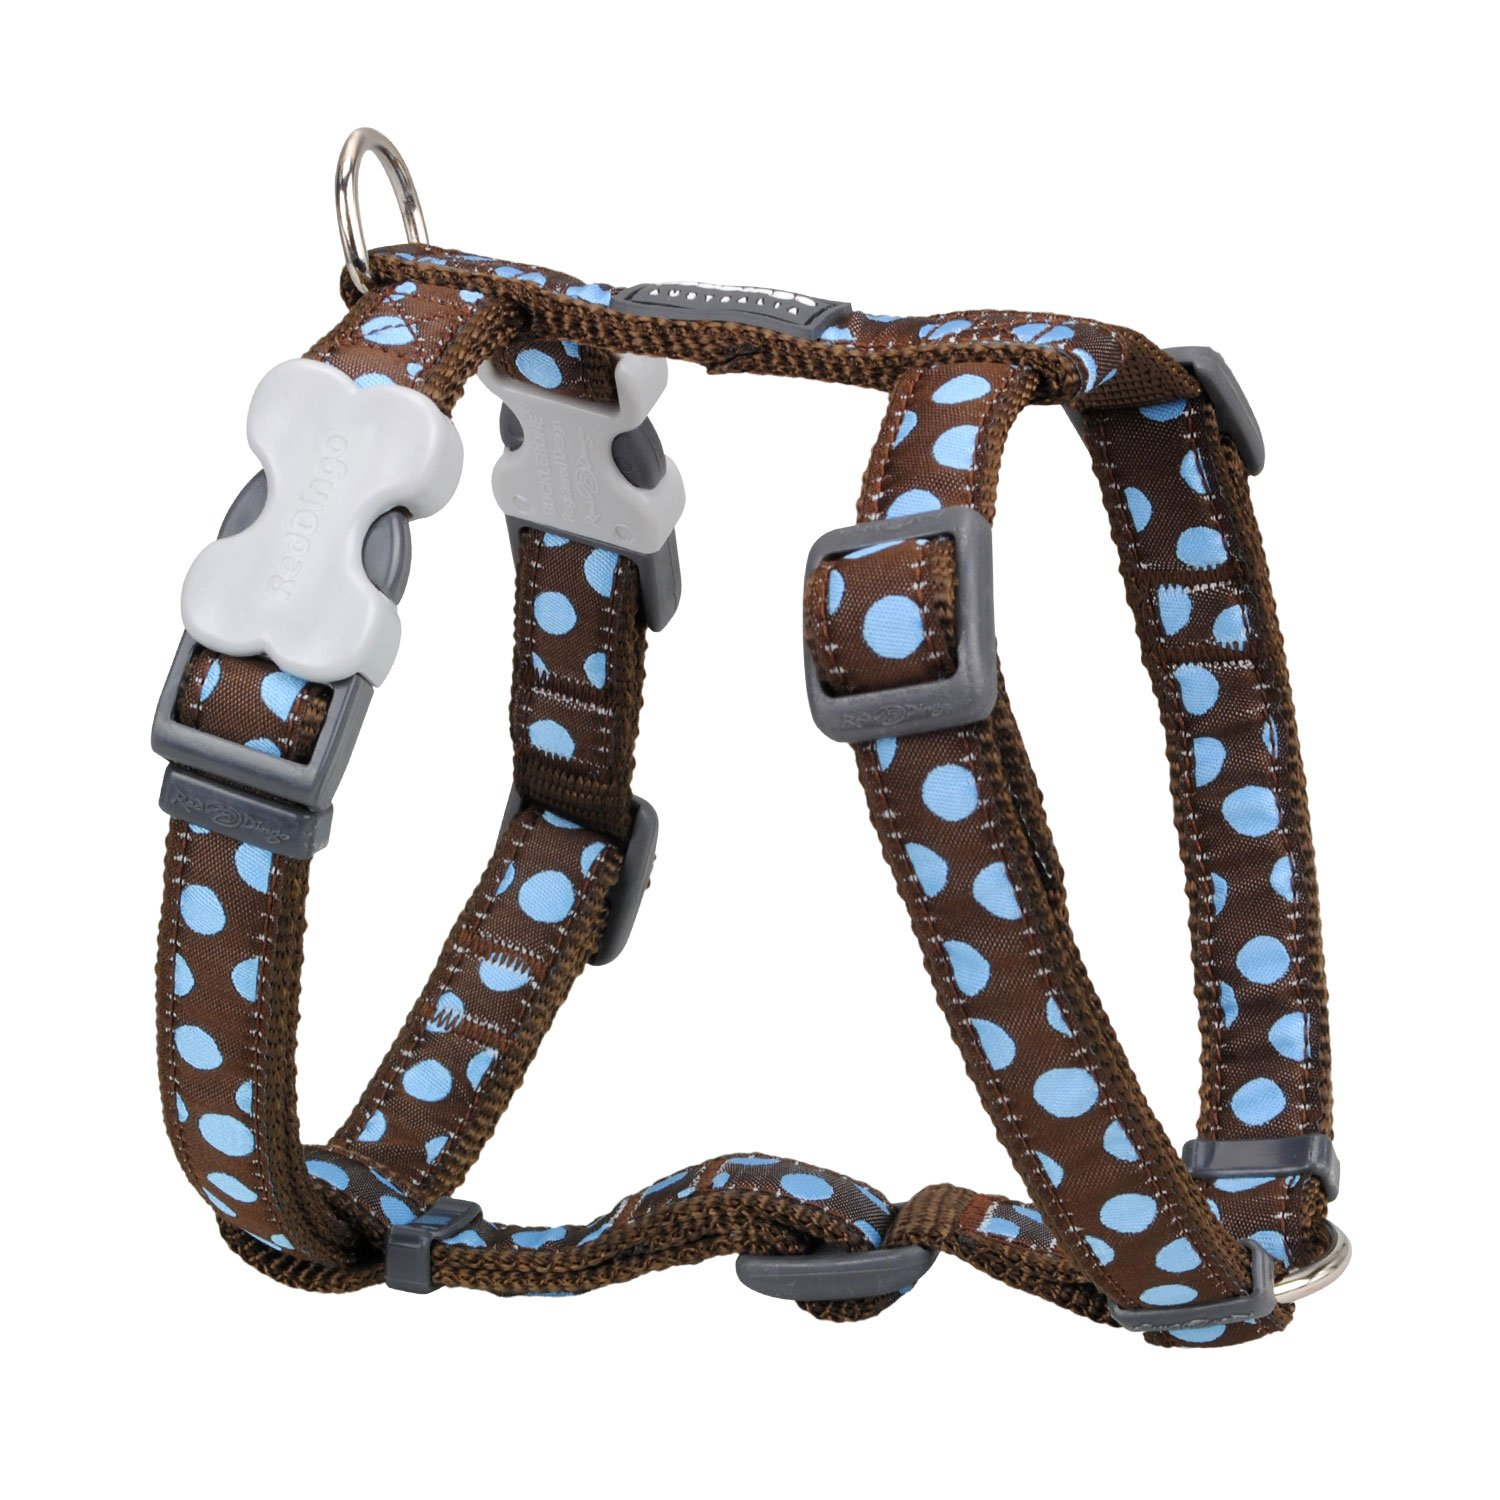 Red Dingo Designer Dog Harness, Small, bluee Spots on Brown